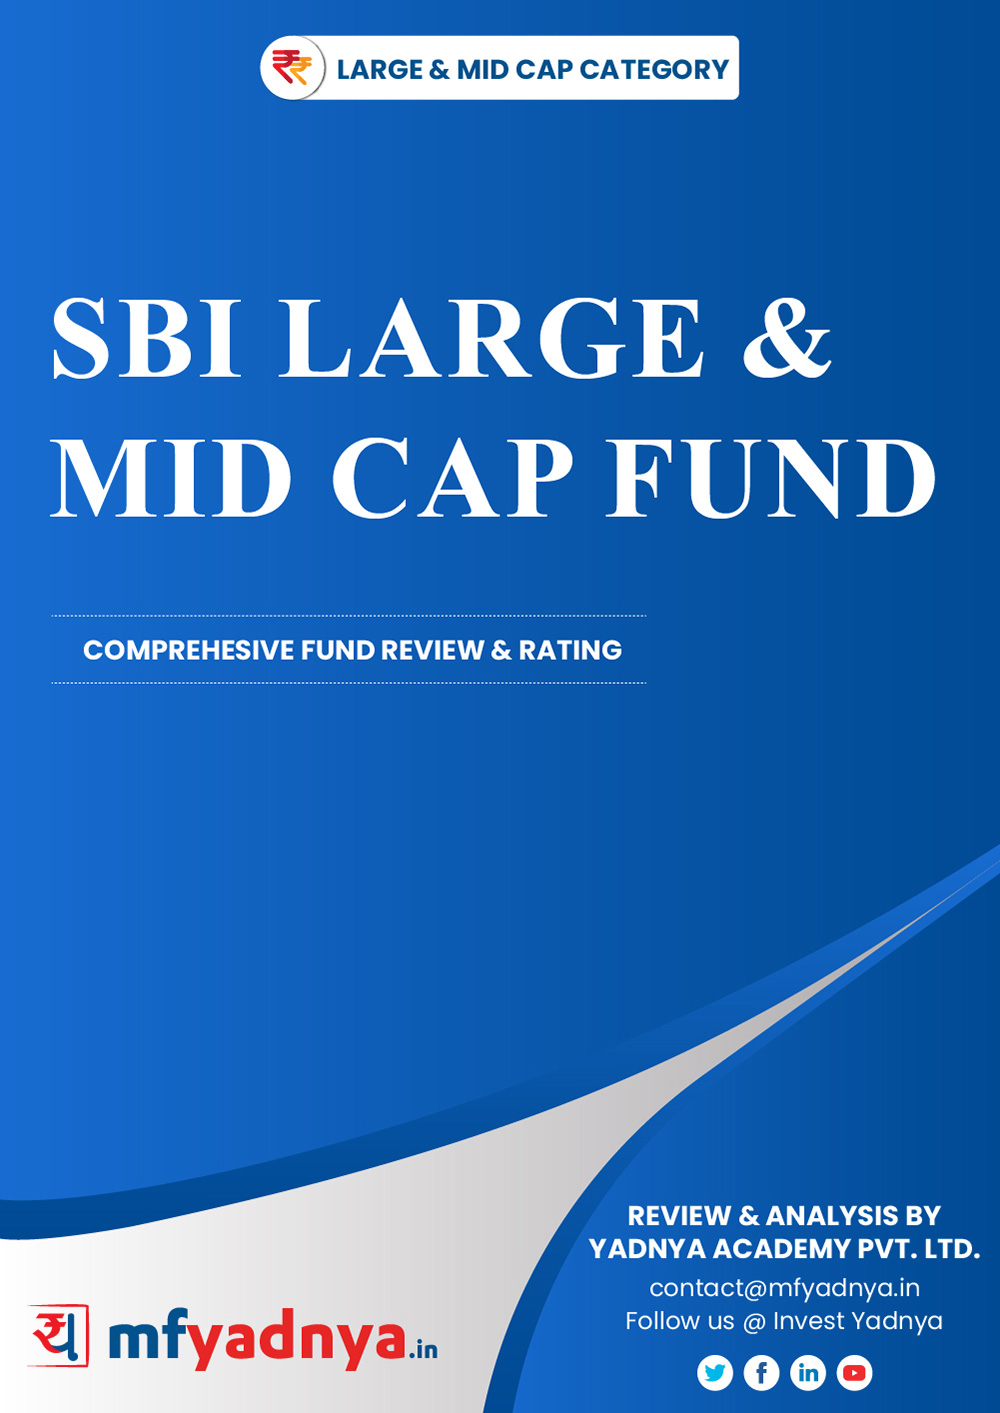 Large & Midcap Category Review - 'SBI Large & Midcap Fund'. Most Comprehensive and detailed MF review based on Yadnya's proprietary methodology of Green, Yellow & Red Star. Detailed Analysis & Review based on Nov 30th, 2019 data.